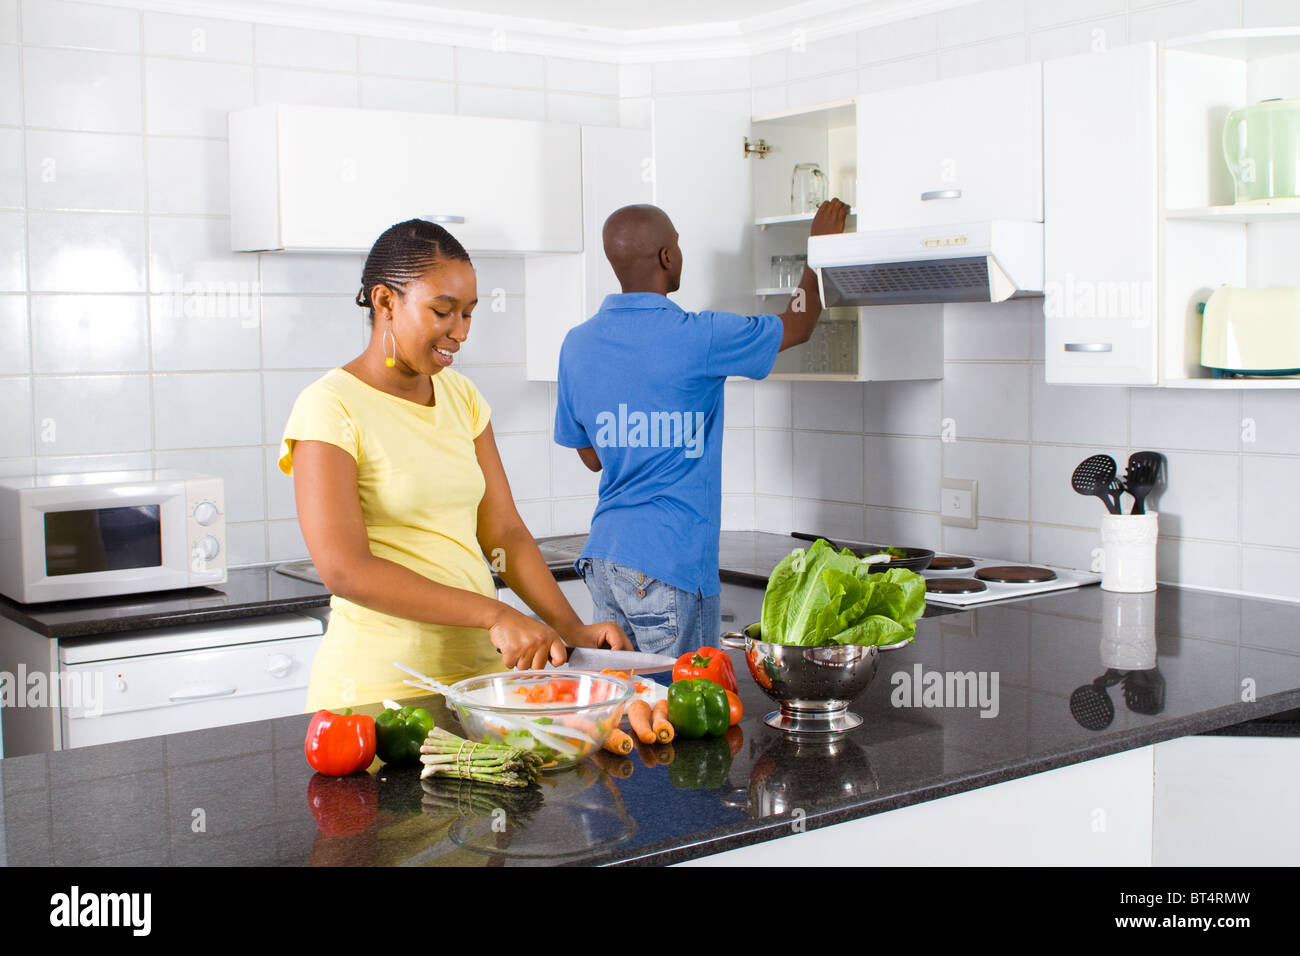 Home Kitchen Cooking African Couple Cooking In Home Kitchen Stock Photo Royalty Free